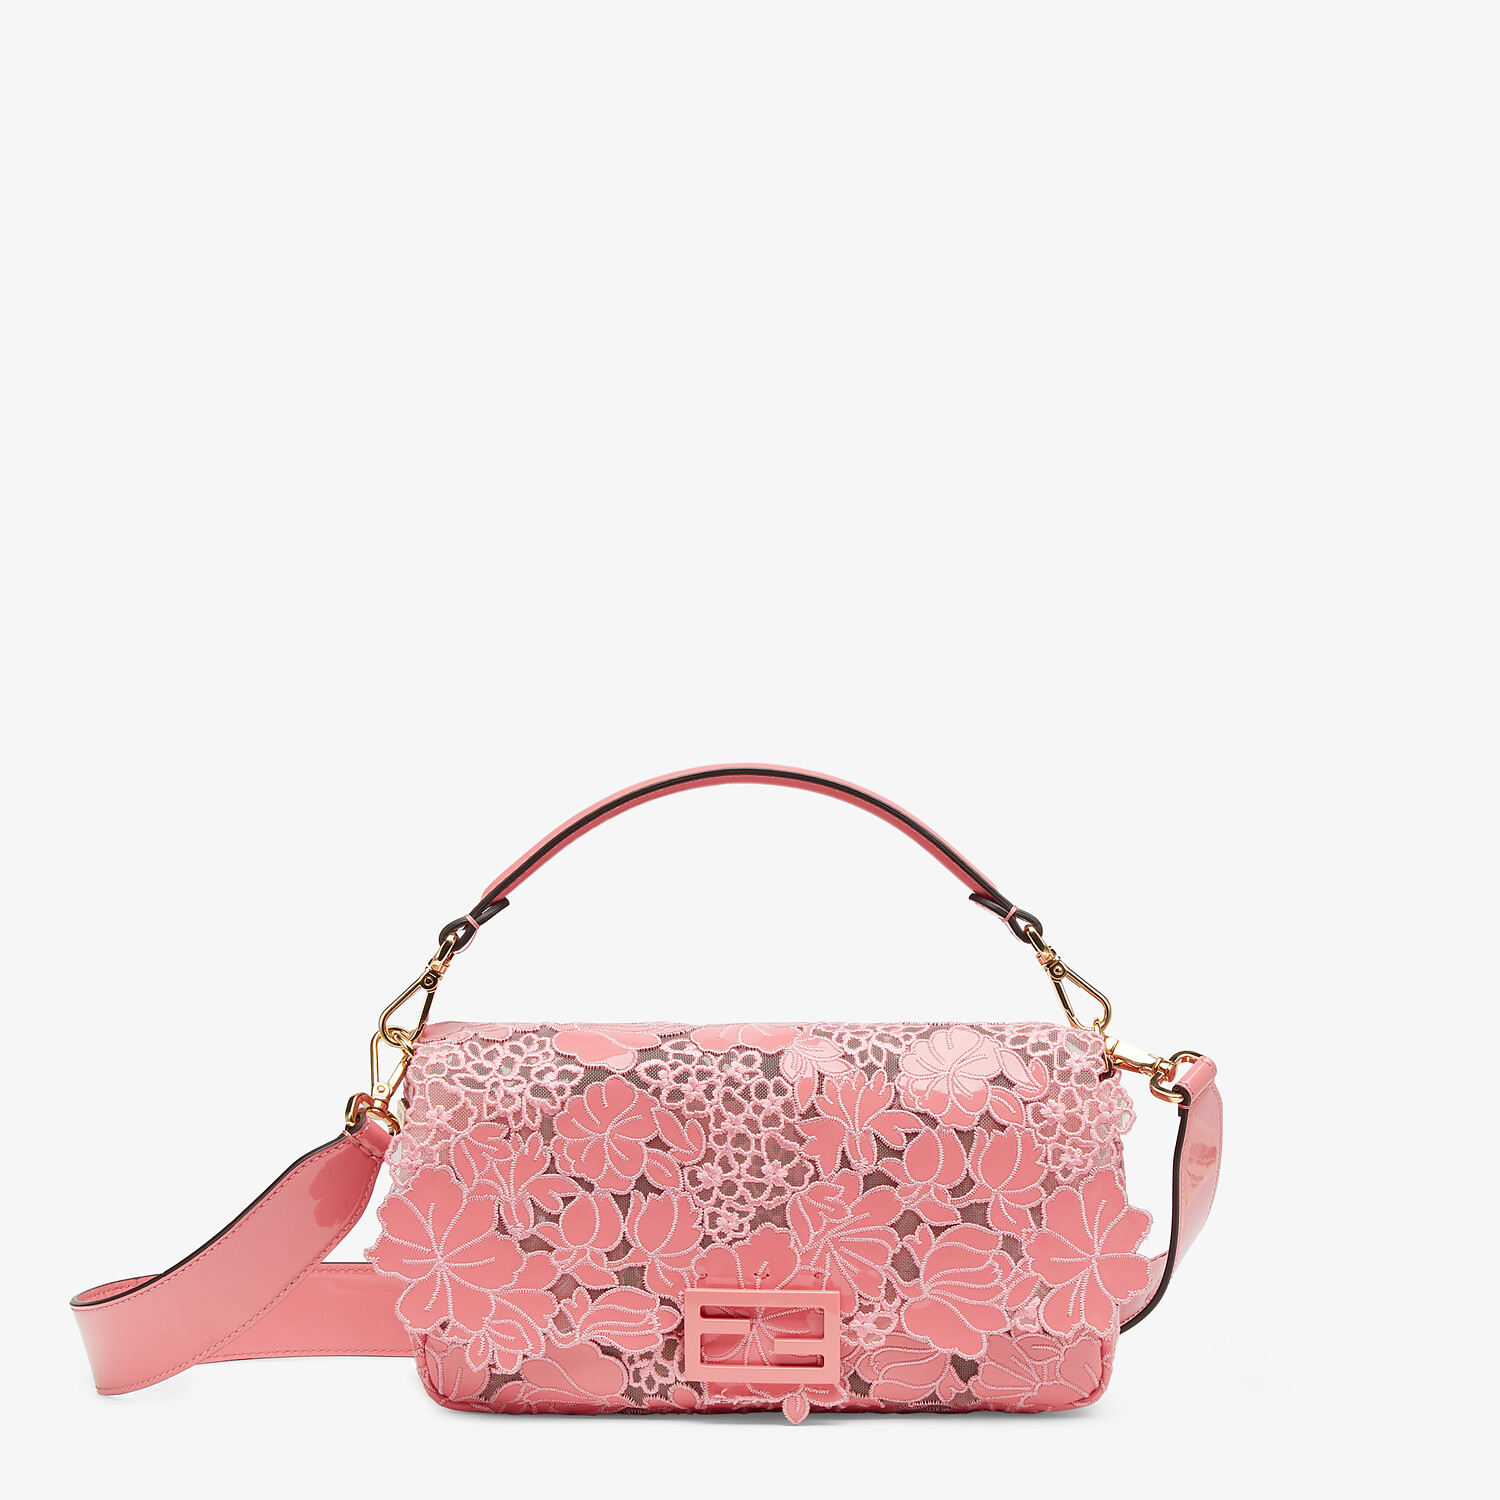 FENDI BAGUETTE - Embroidered pink patent leather bag - view 1 detail